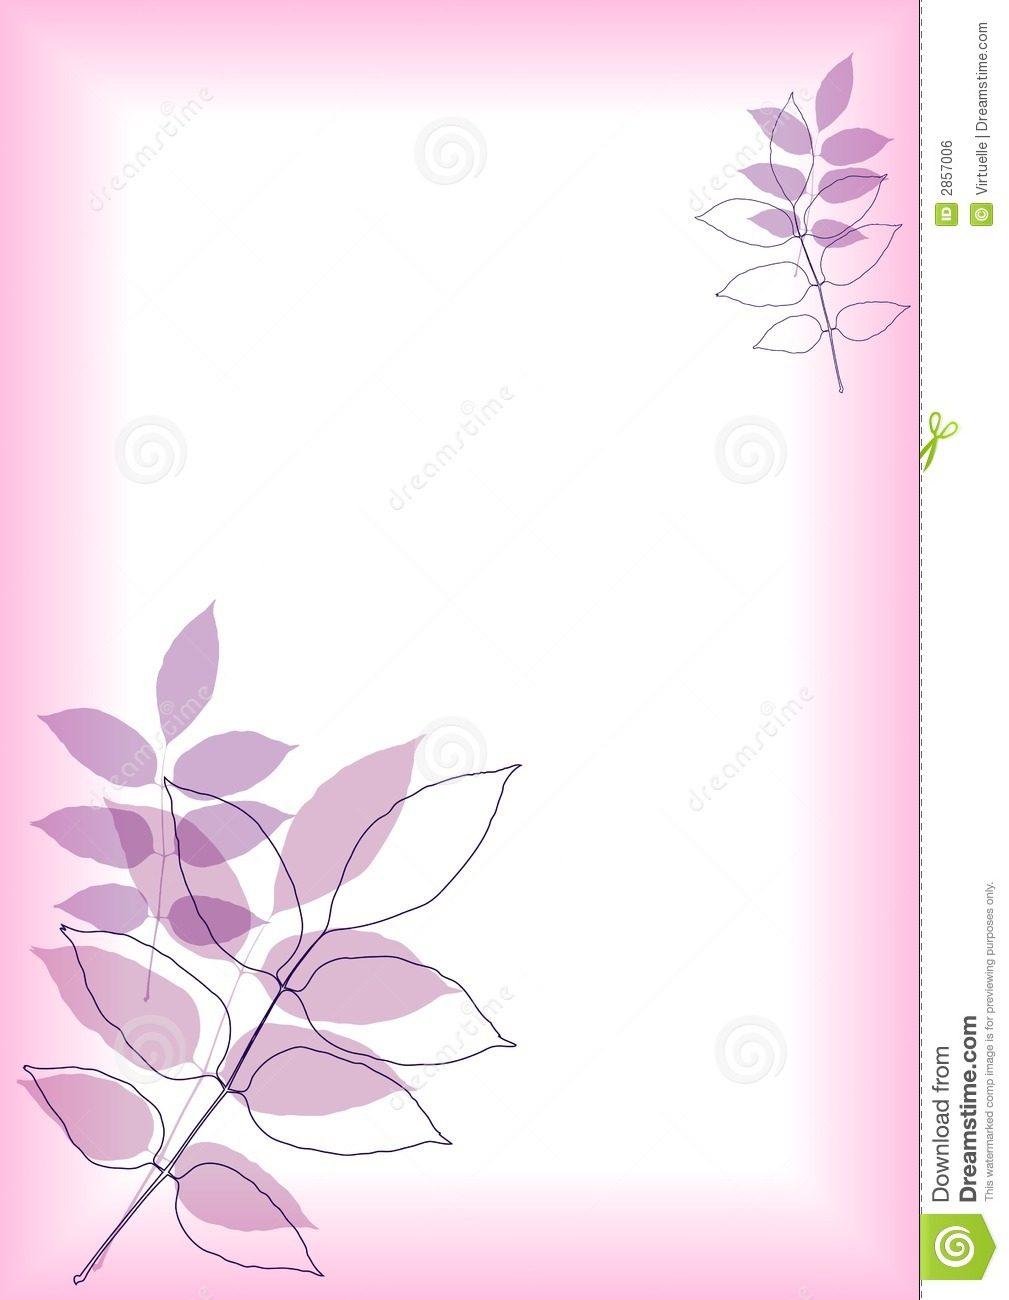 Fall Season Wallpaper Free Purple Foliage Border Royalty Free Stock Image Image